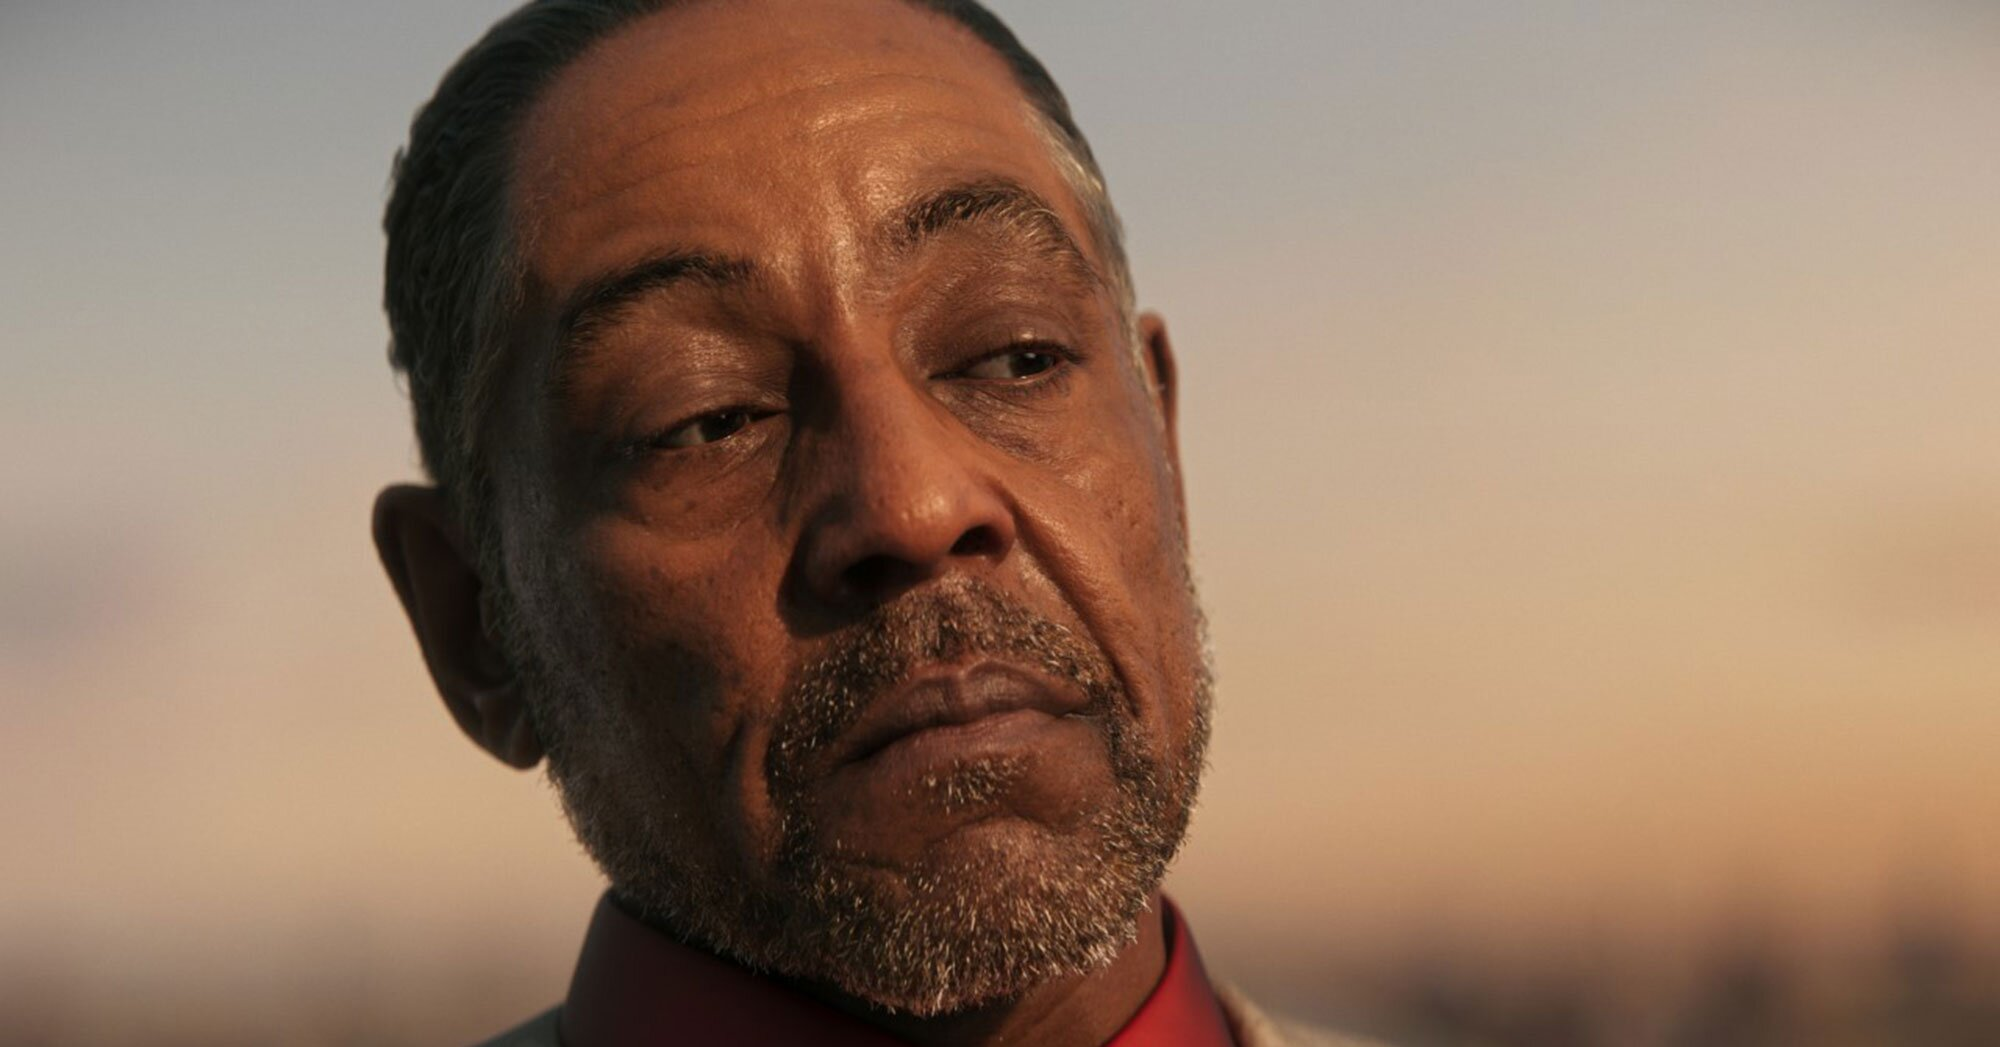 Far Cry 6 Announced With Breaking Bad S Giancarlo Esposito As